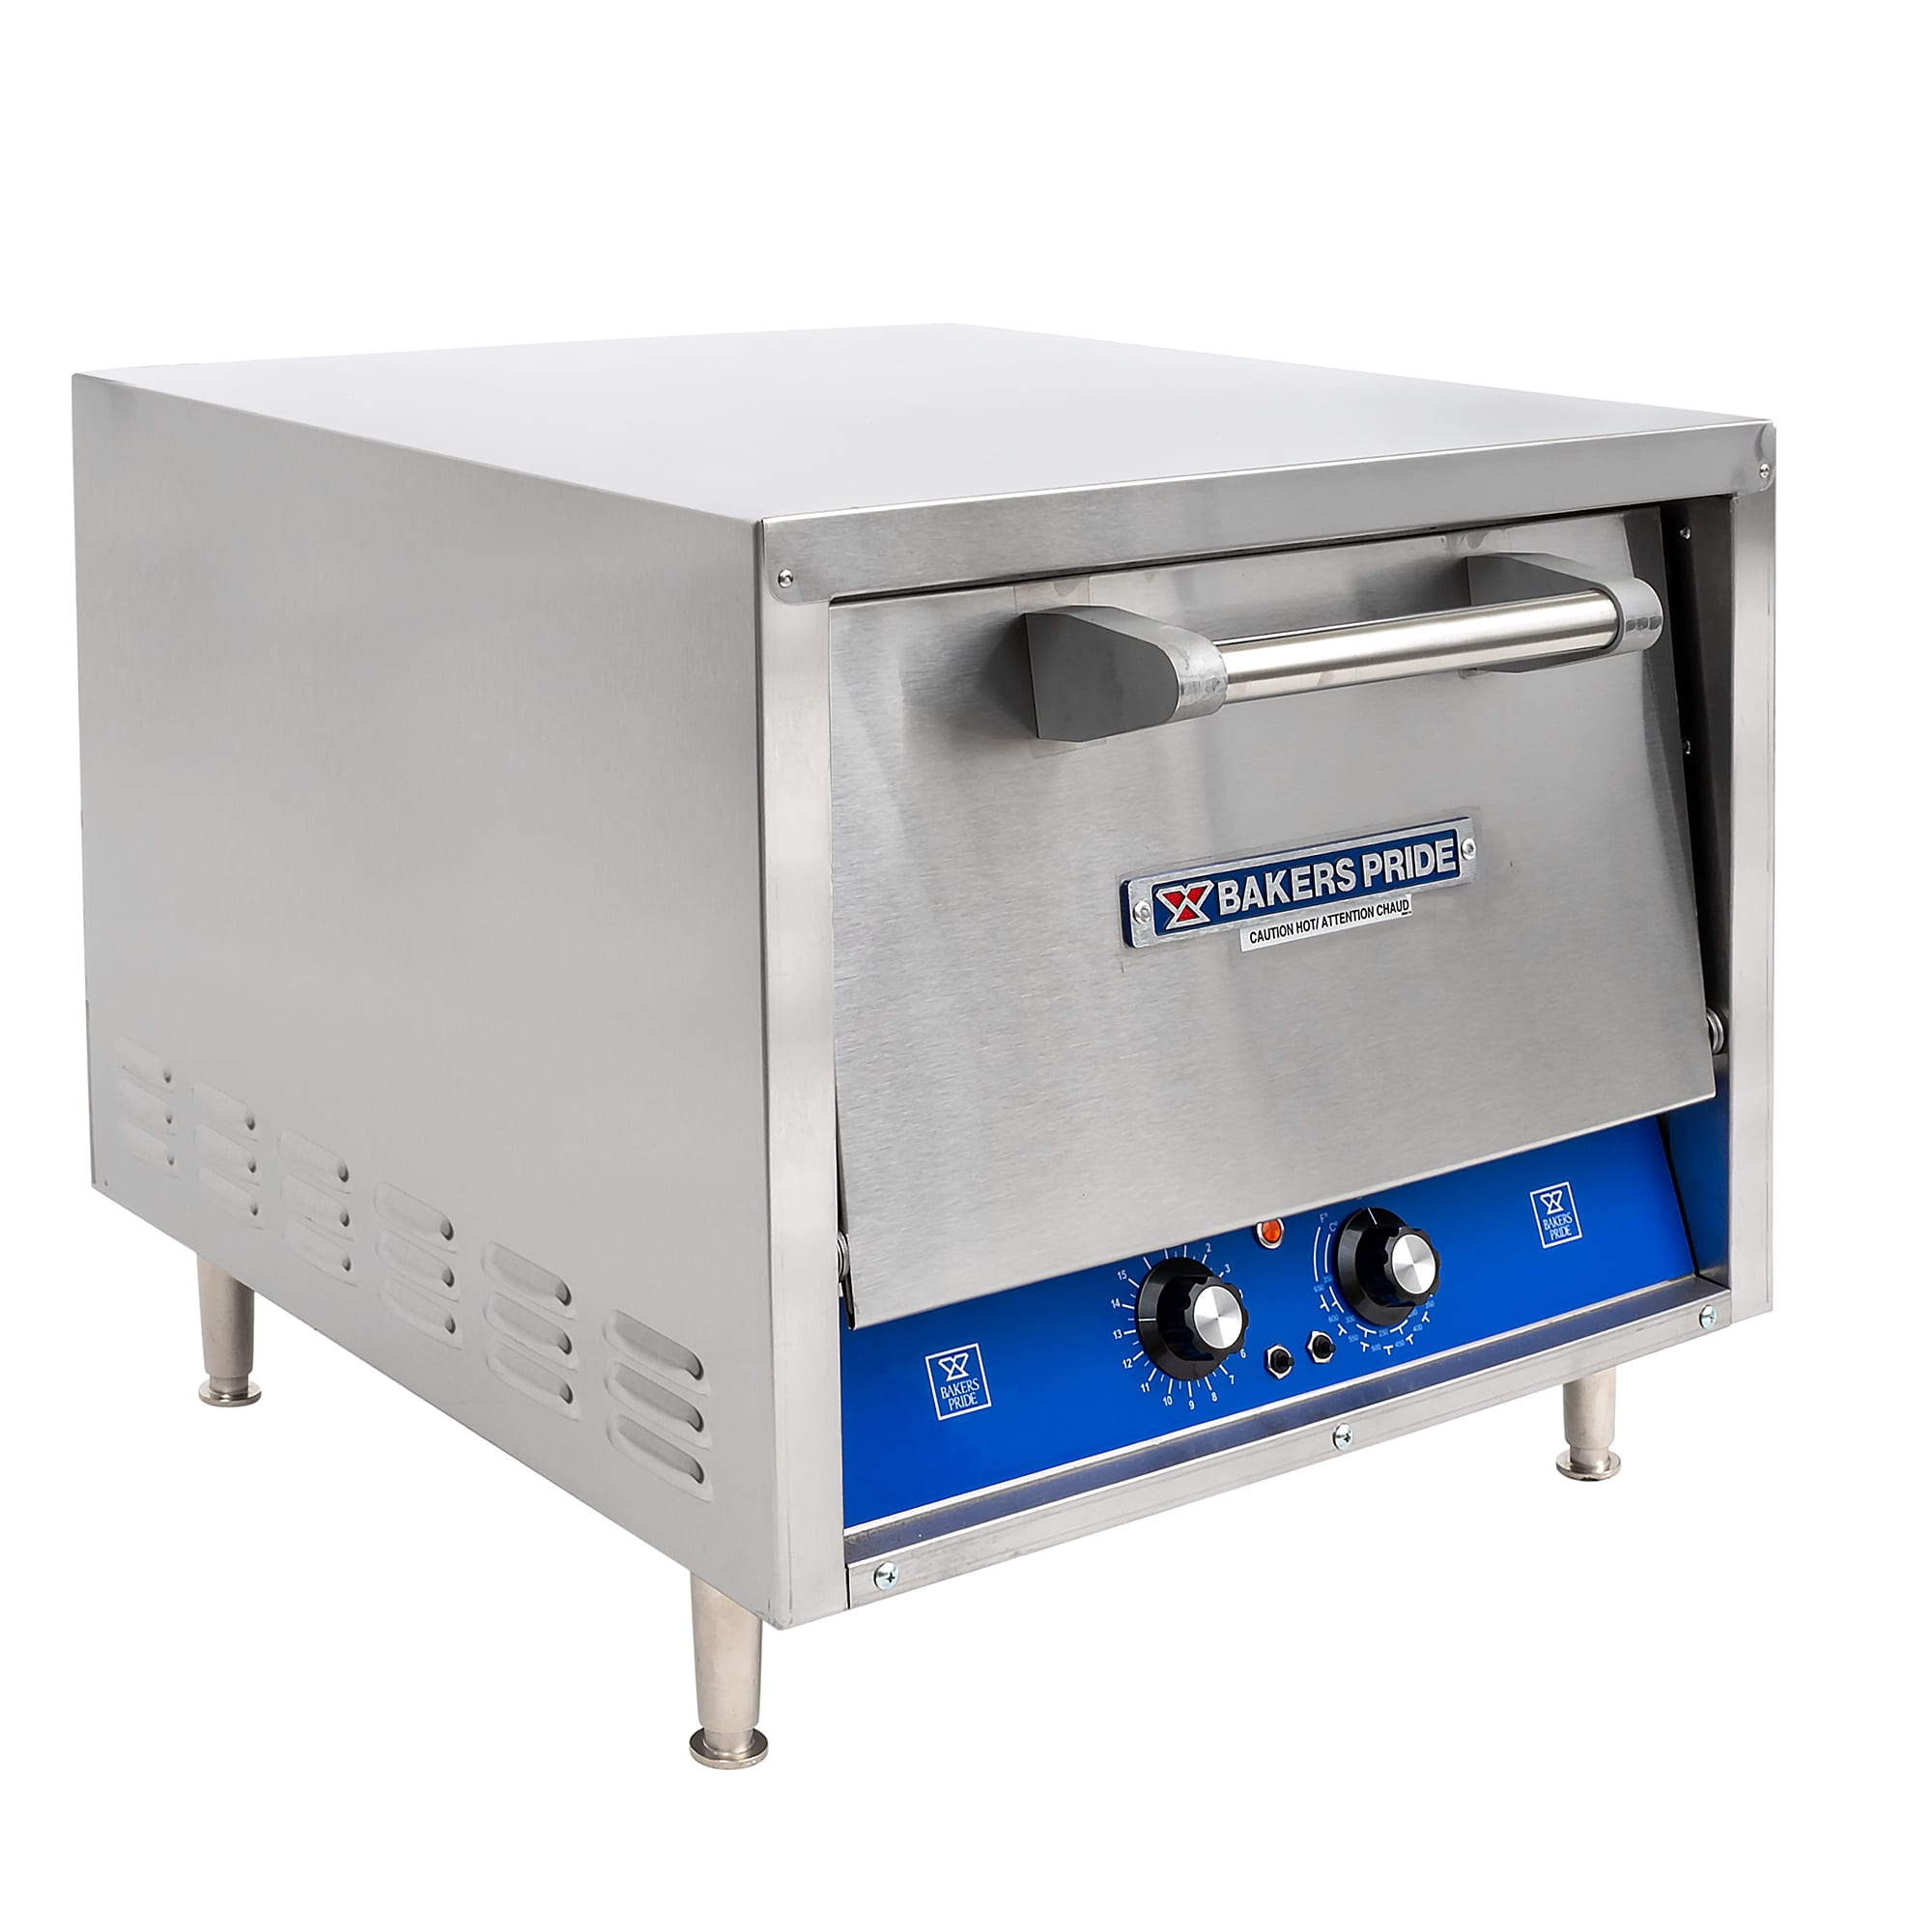 Bakers Pride P18S Countertop Pizza/Pretzel Oven - Single Deck, 220-240v/1ph